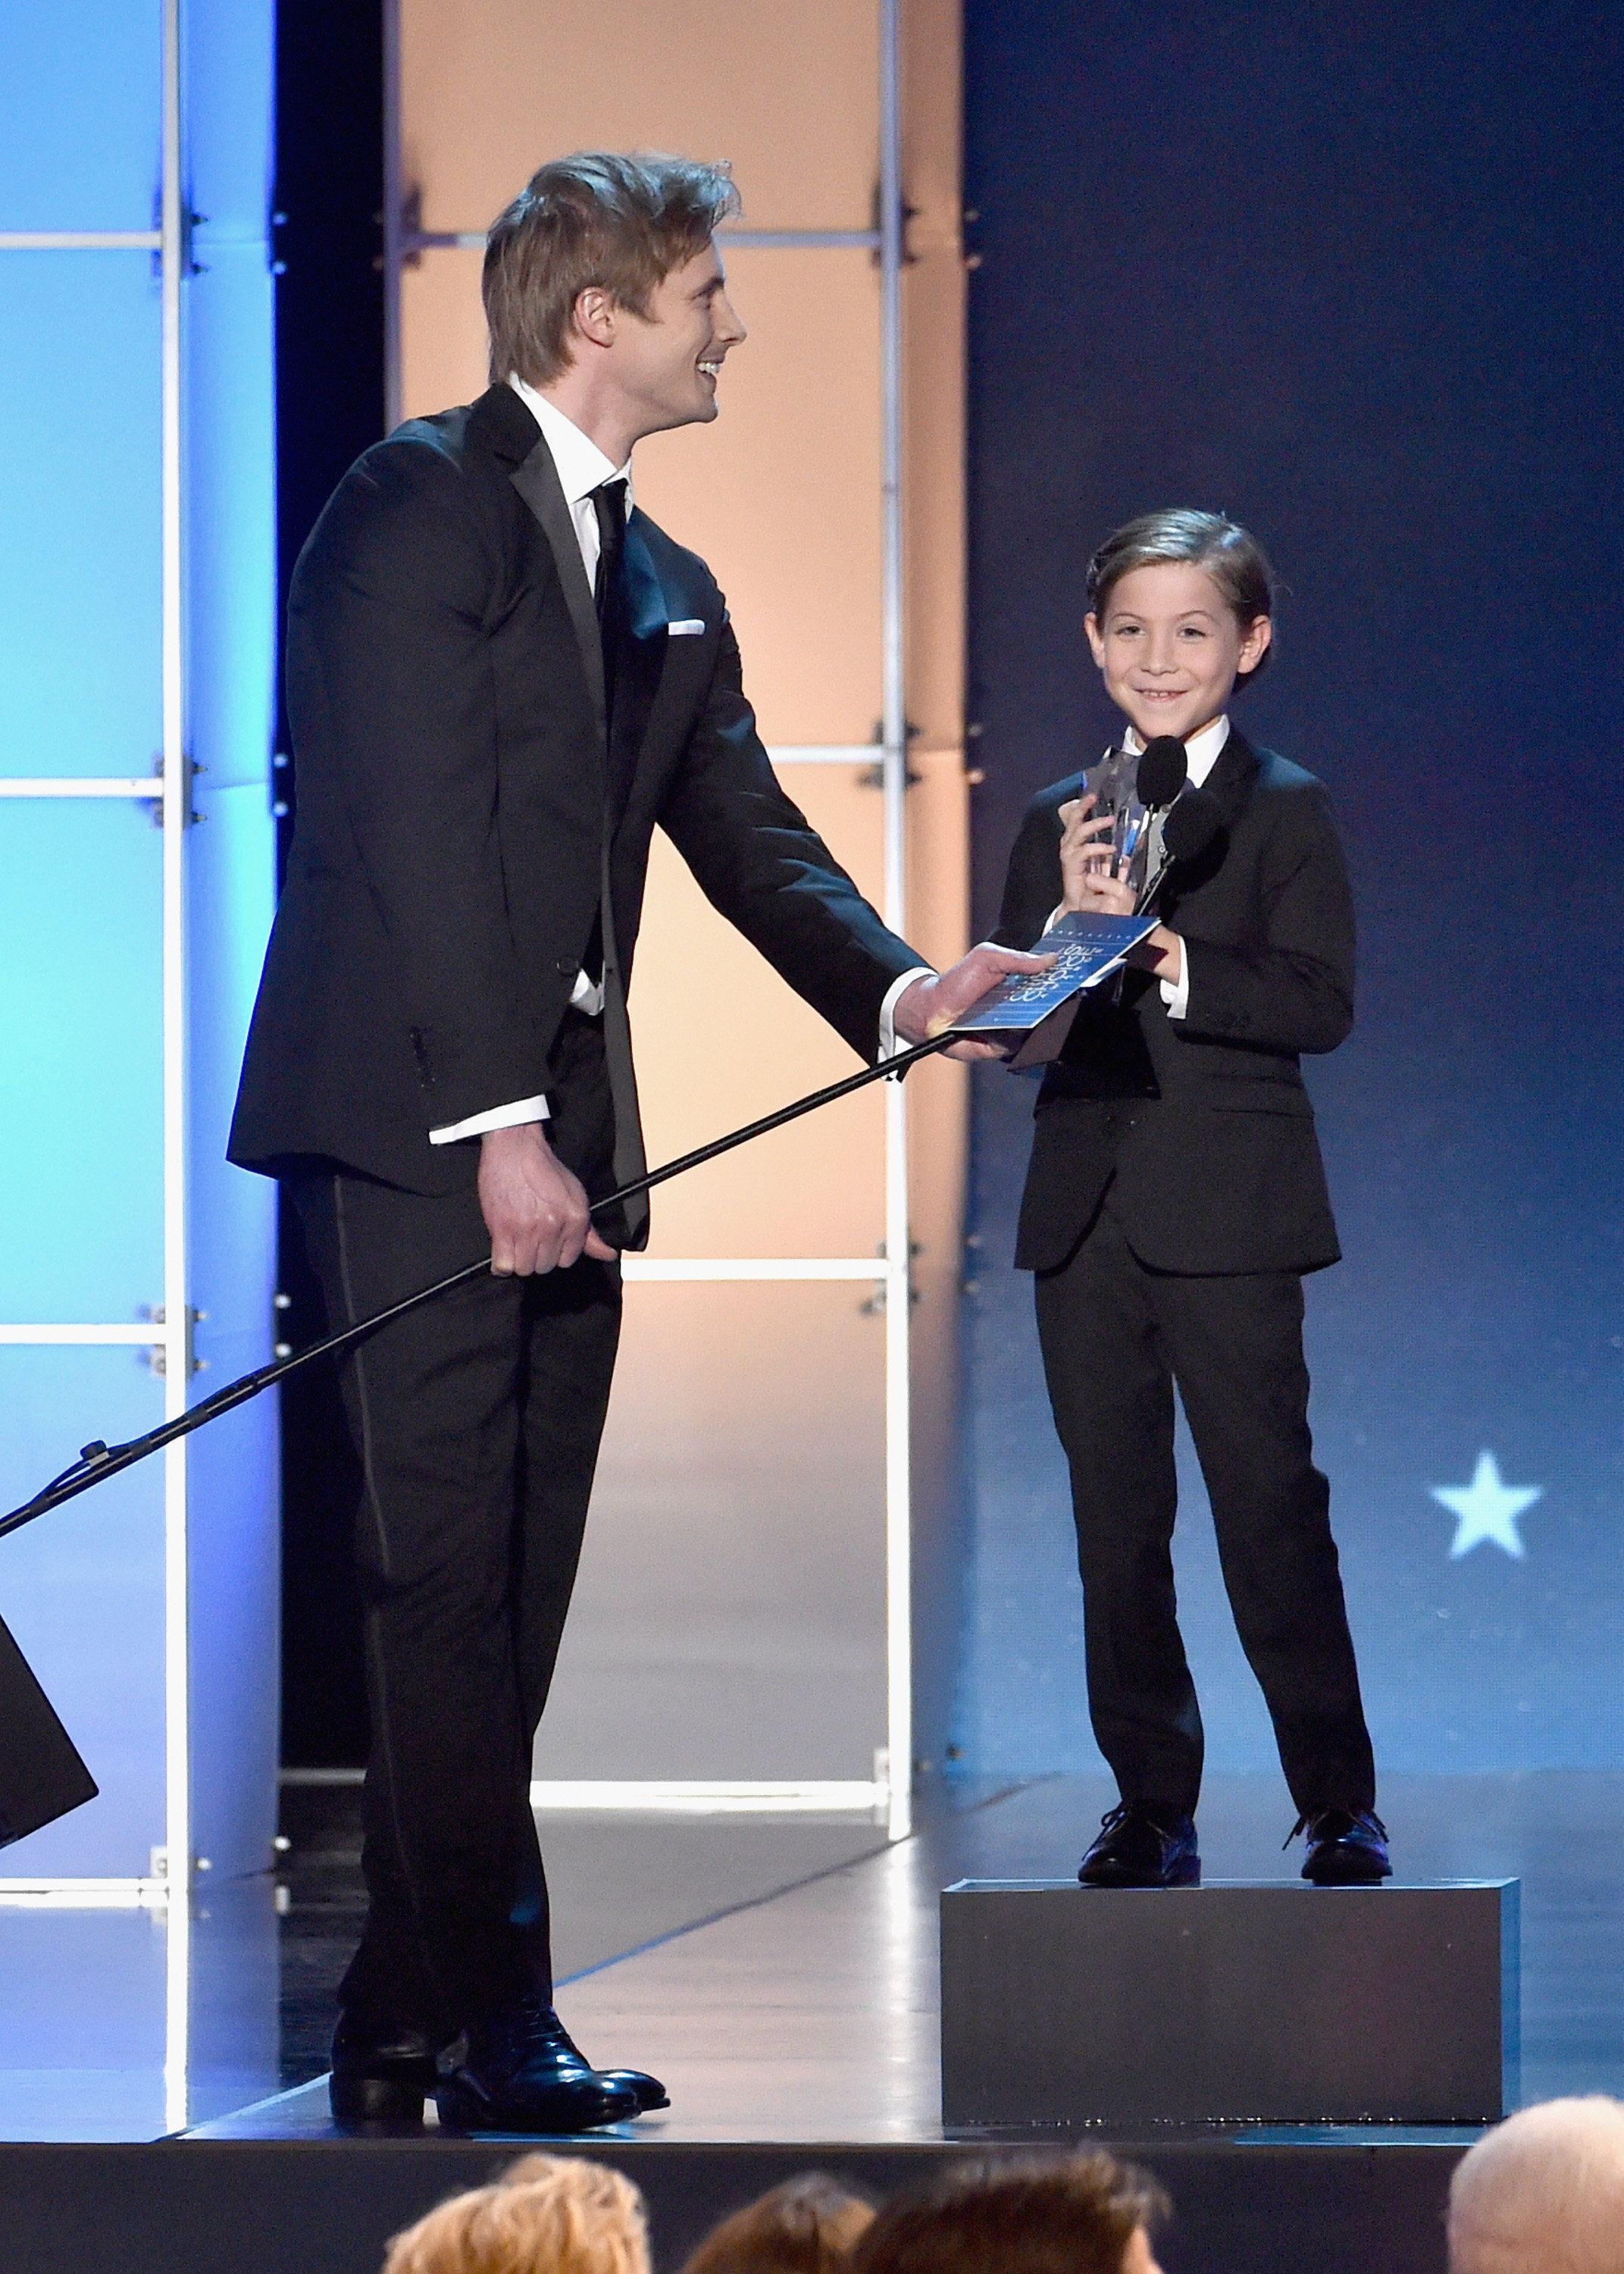 SANTA MONICA, CA - JANUARY 17: Actors Bradley James (L) and Jacob Tremblay, winner of Best Young Actor/Actress for 'Room,' onstage during the 21st Annual Critics' Choice Awards at Barker Hangar on January 17, 2016 in Santa Monica, California.  (Photo by Lester Cohen/WireImage)